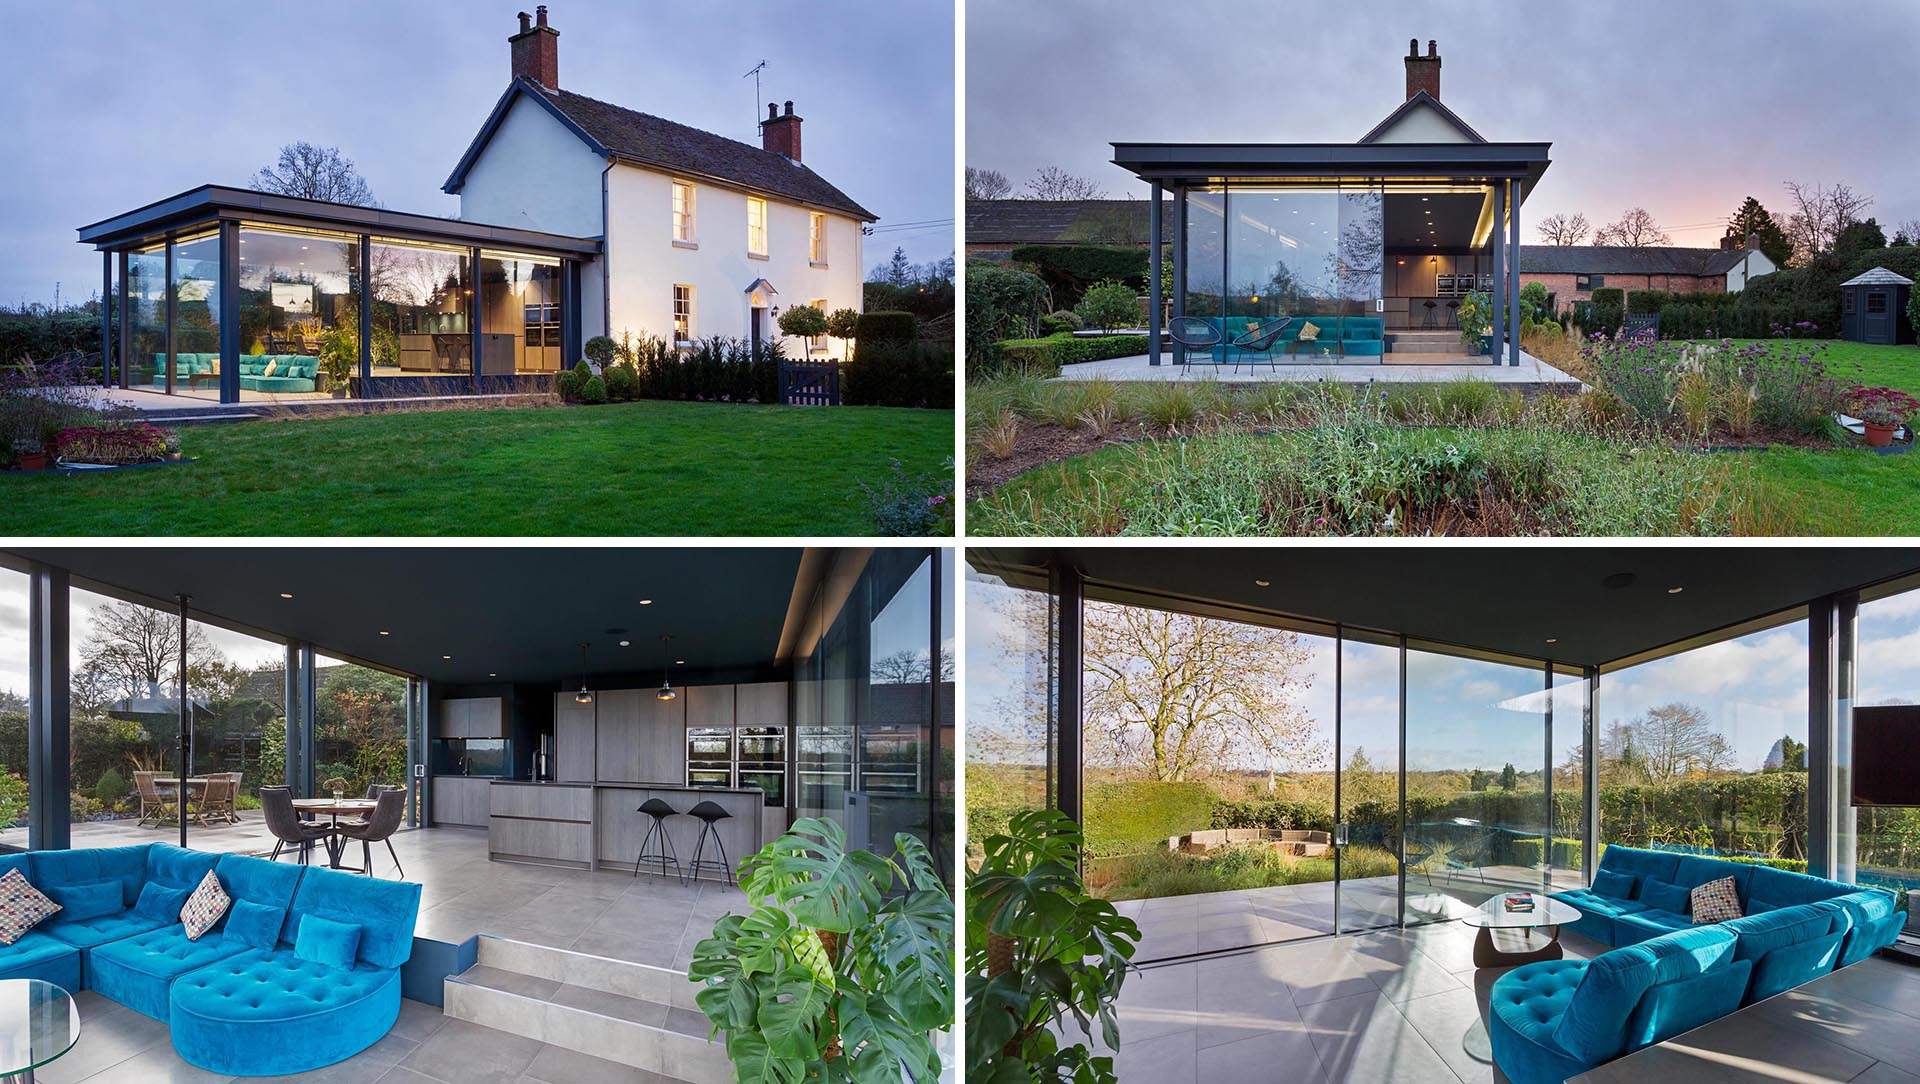 A Glass Enclosed Extension Added More Living Space To This Home